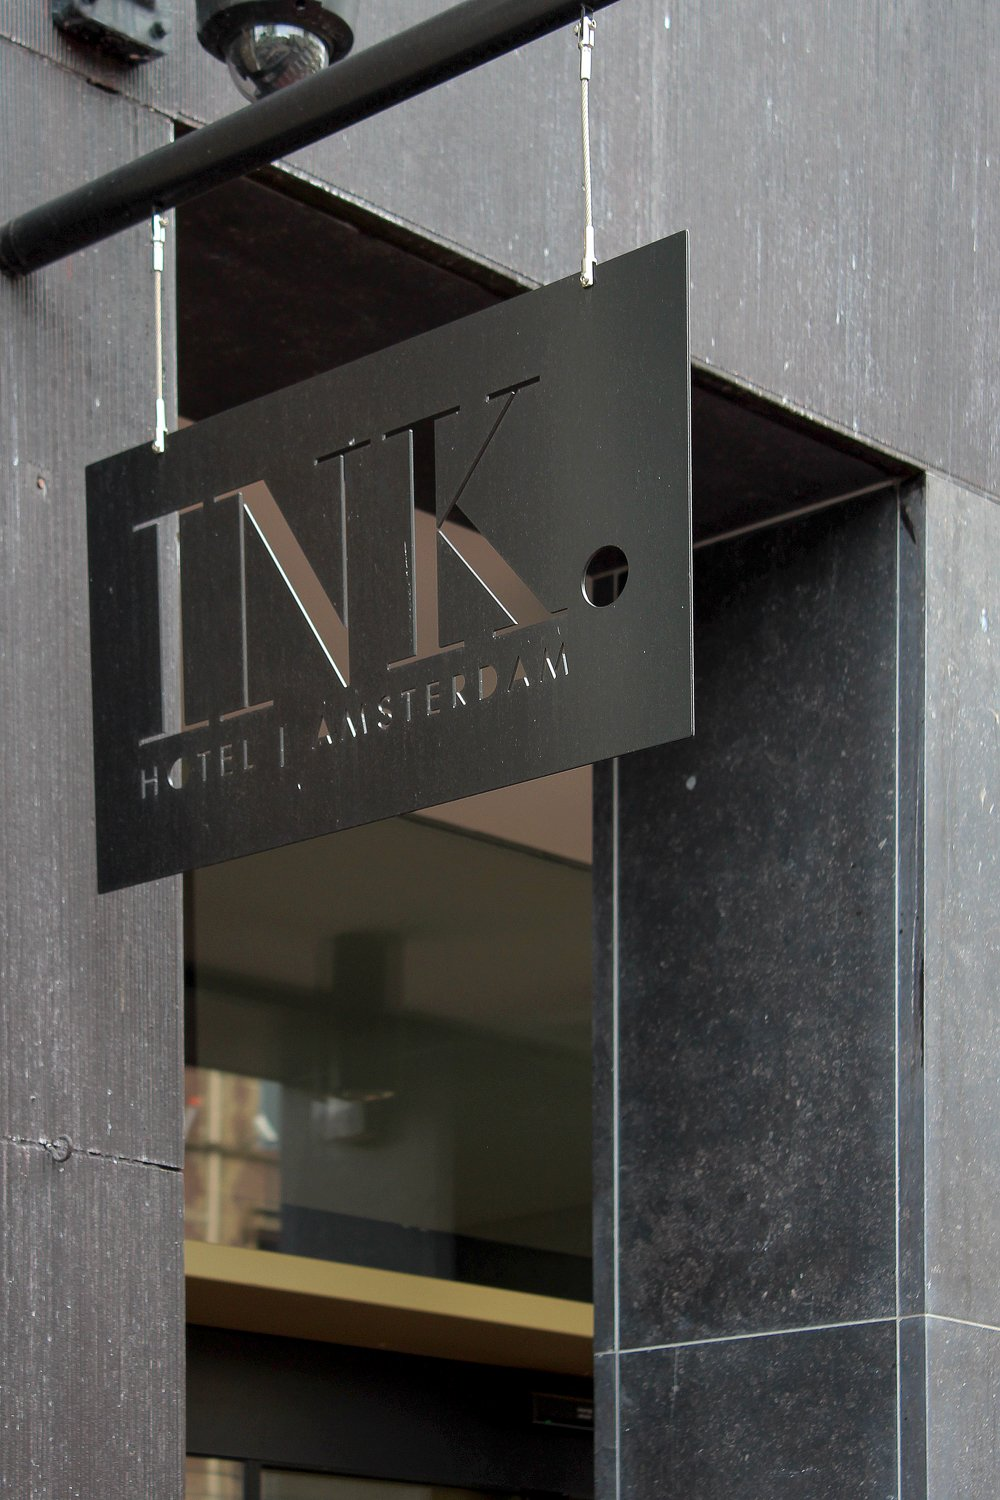 The entrance of the Ink Hotel Amsterdam on Nieuwezijds Voorburgwal